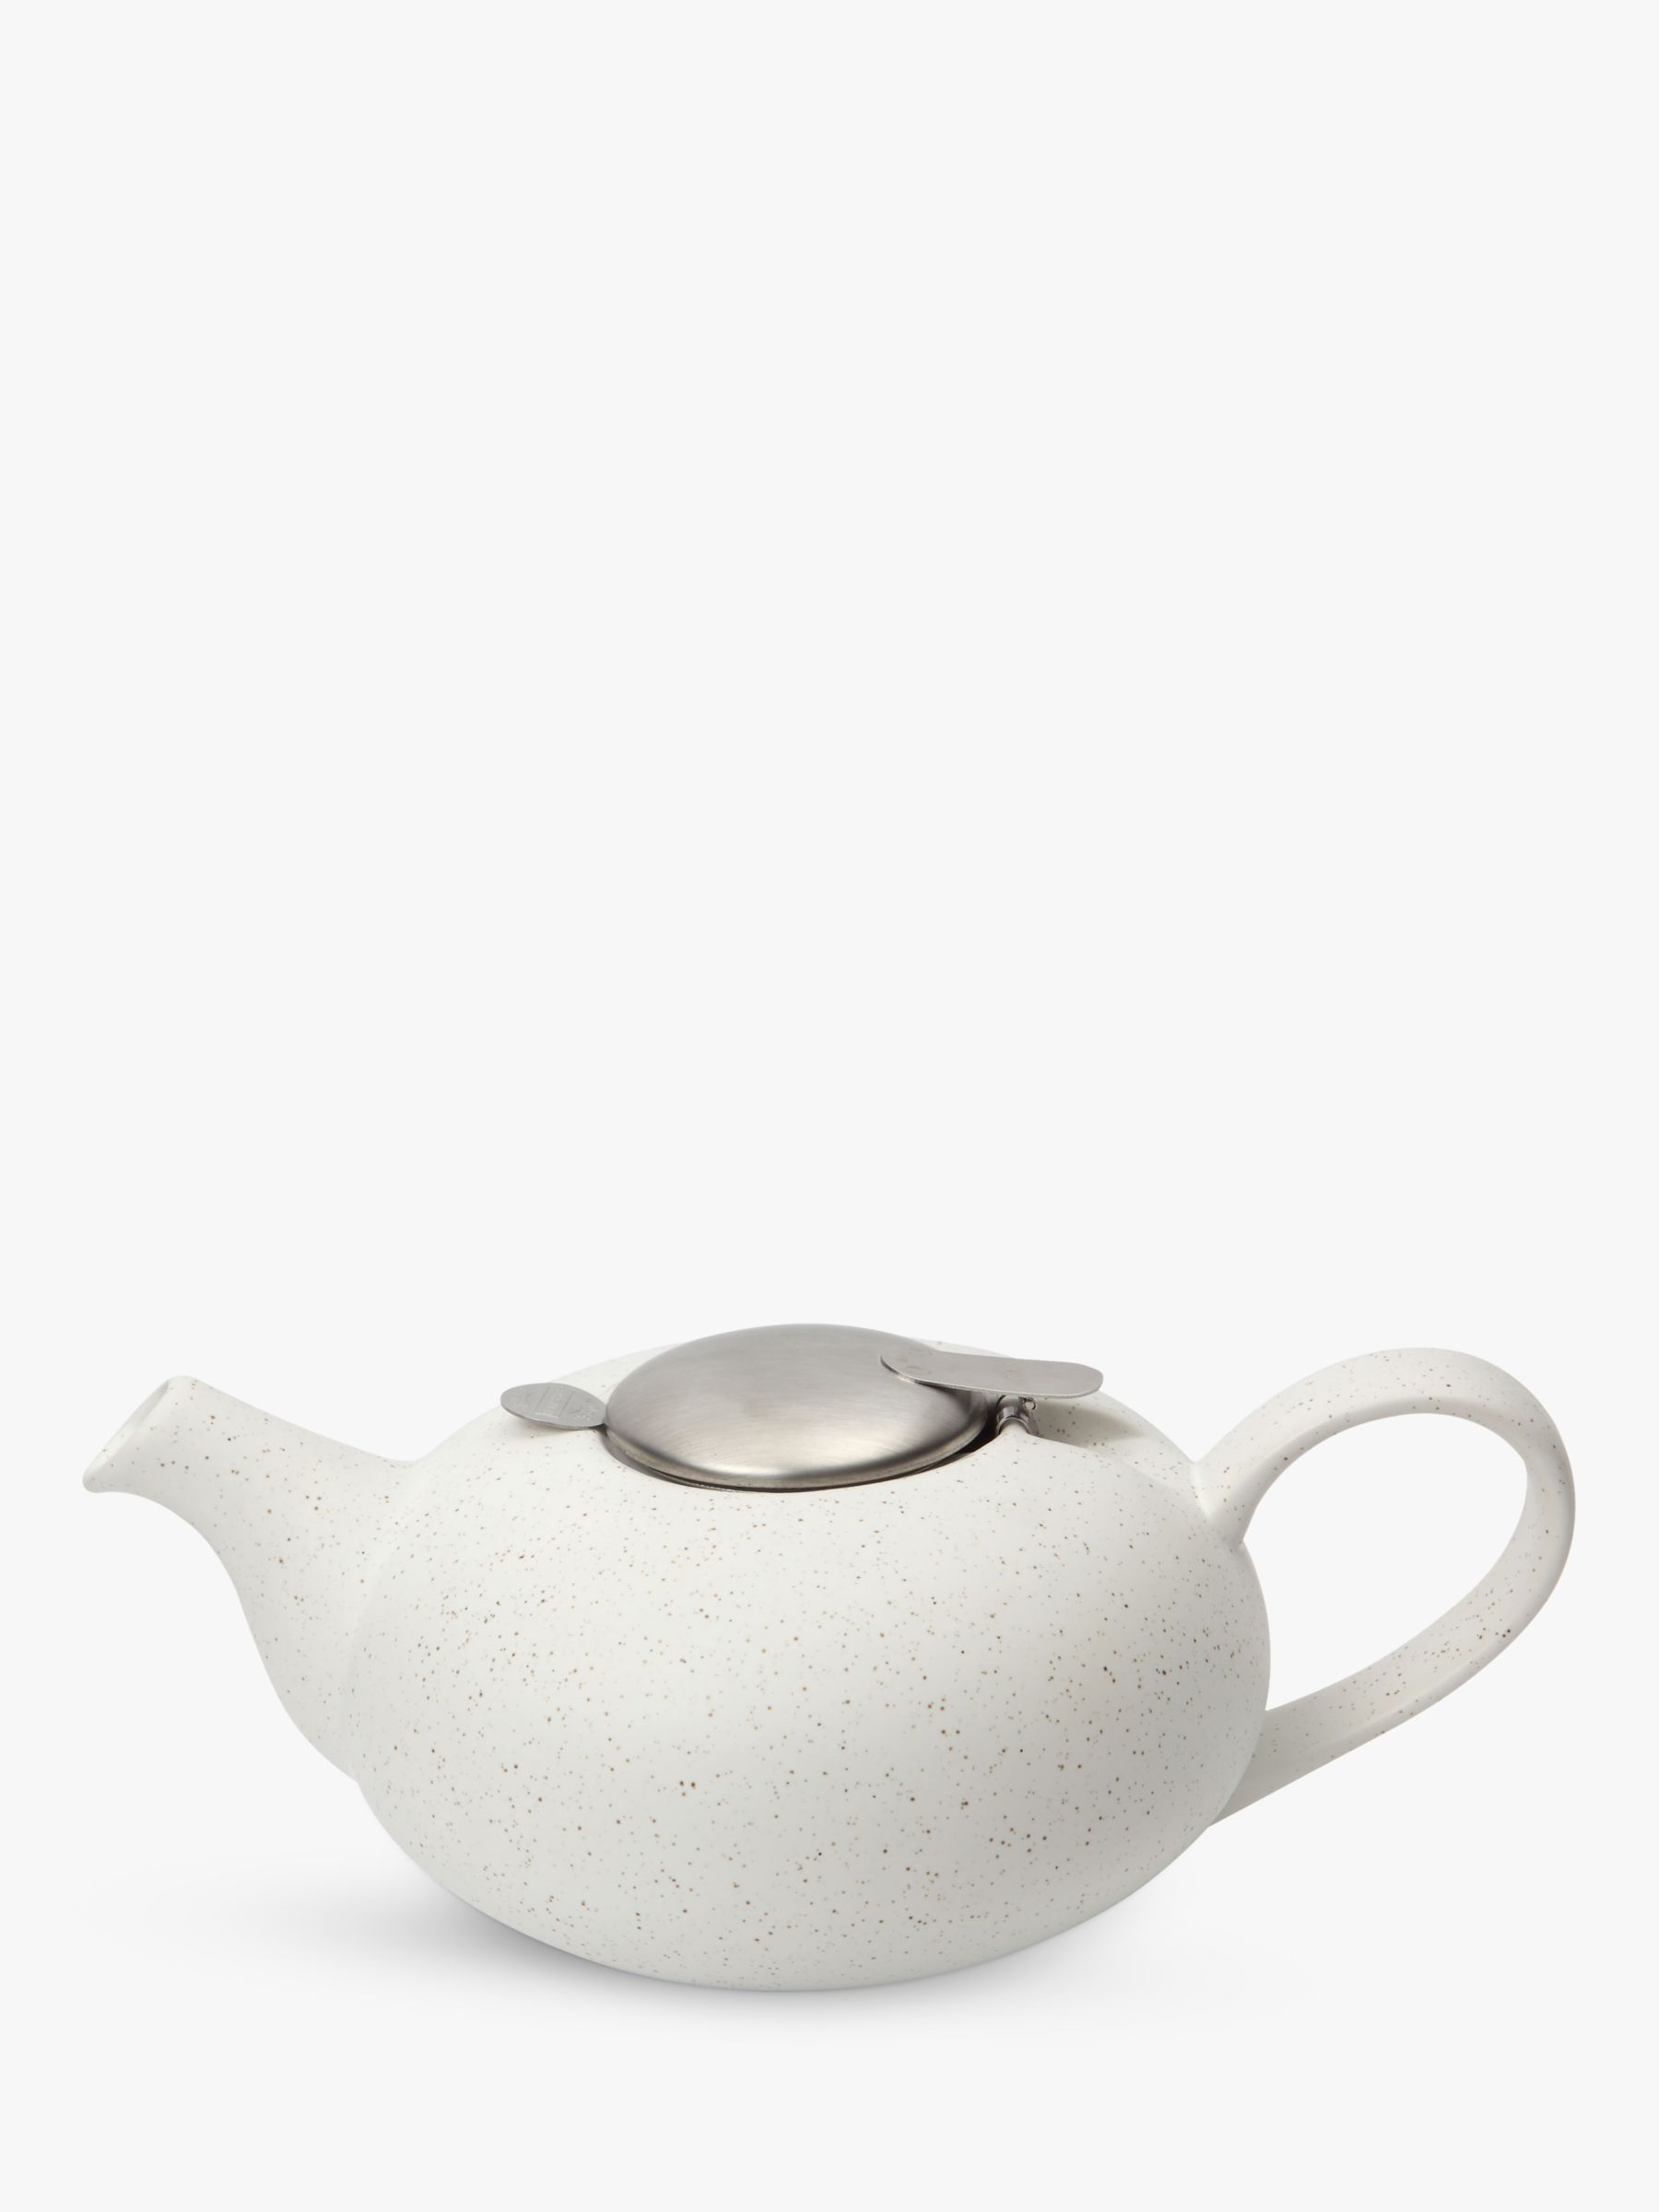 London Pottery London Pottery Speckled Pebble Teapot, 2 Cup, White